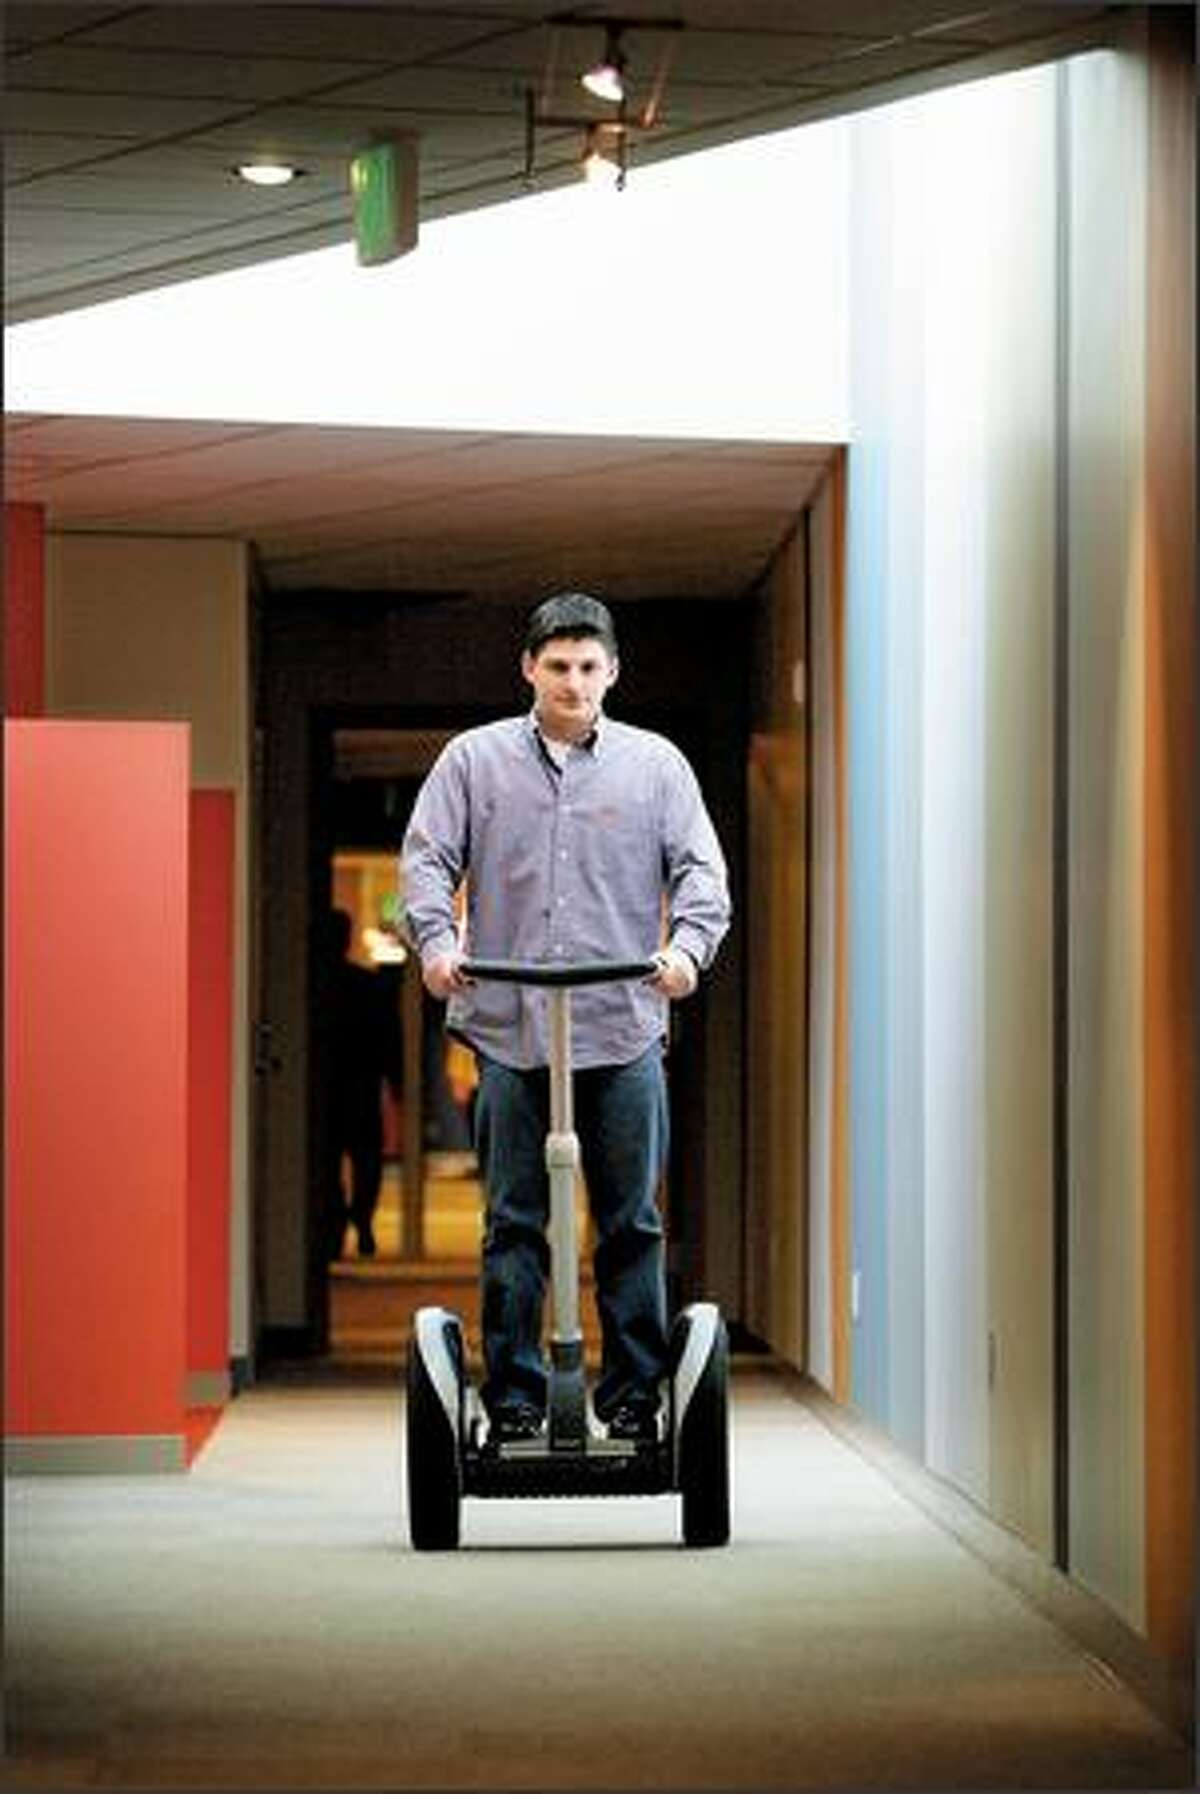 Keith Smith, CEO and Founder of 180solutions, rides a Segway down the hall at the company's headquarters in Bellevue. The company is a lot like dot-com companies of the '90s, with one exception: It is highly profitable.